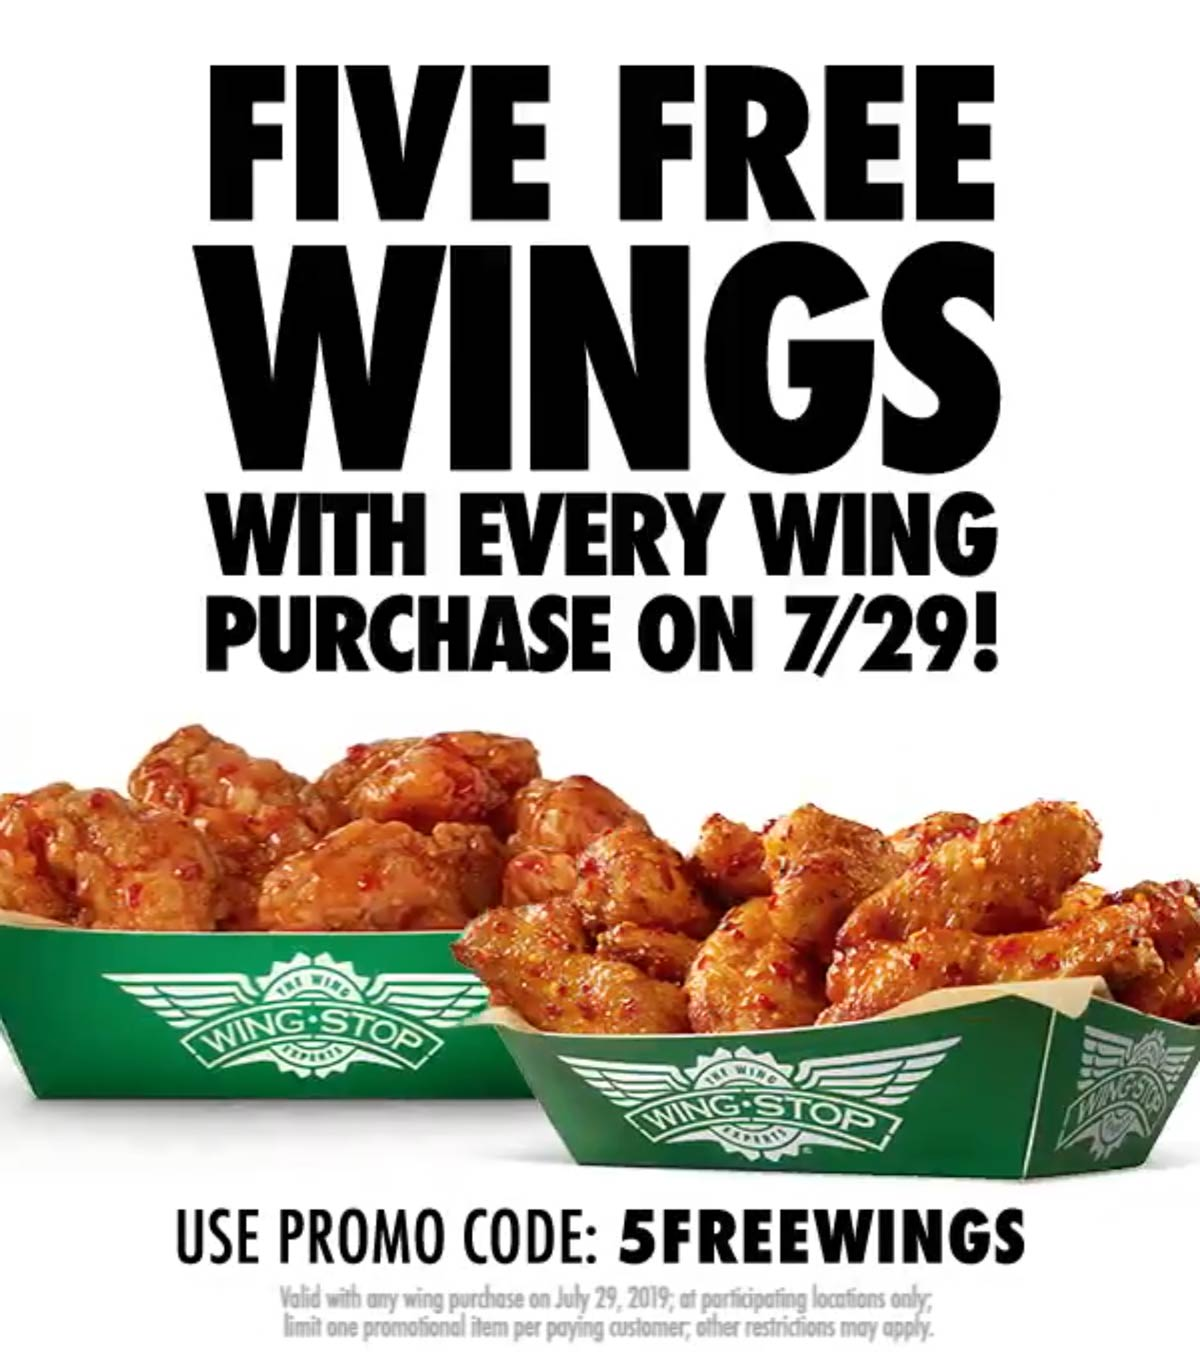 Wingstop Coupon January 2020 5 free wings with your wings today at Wingstop